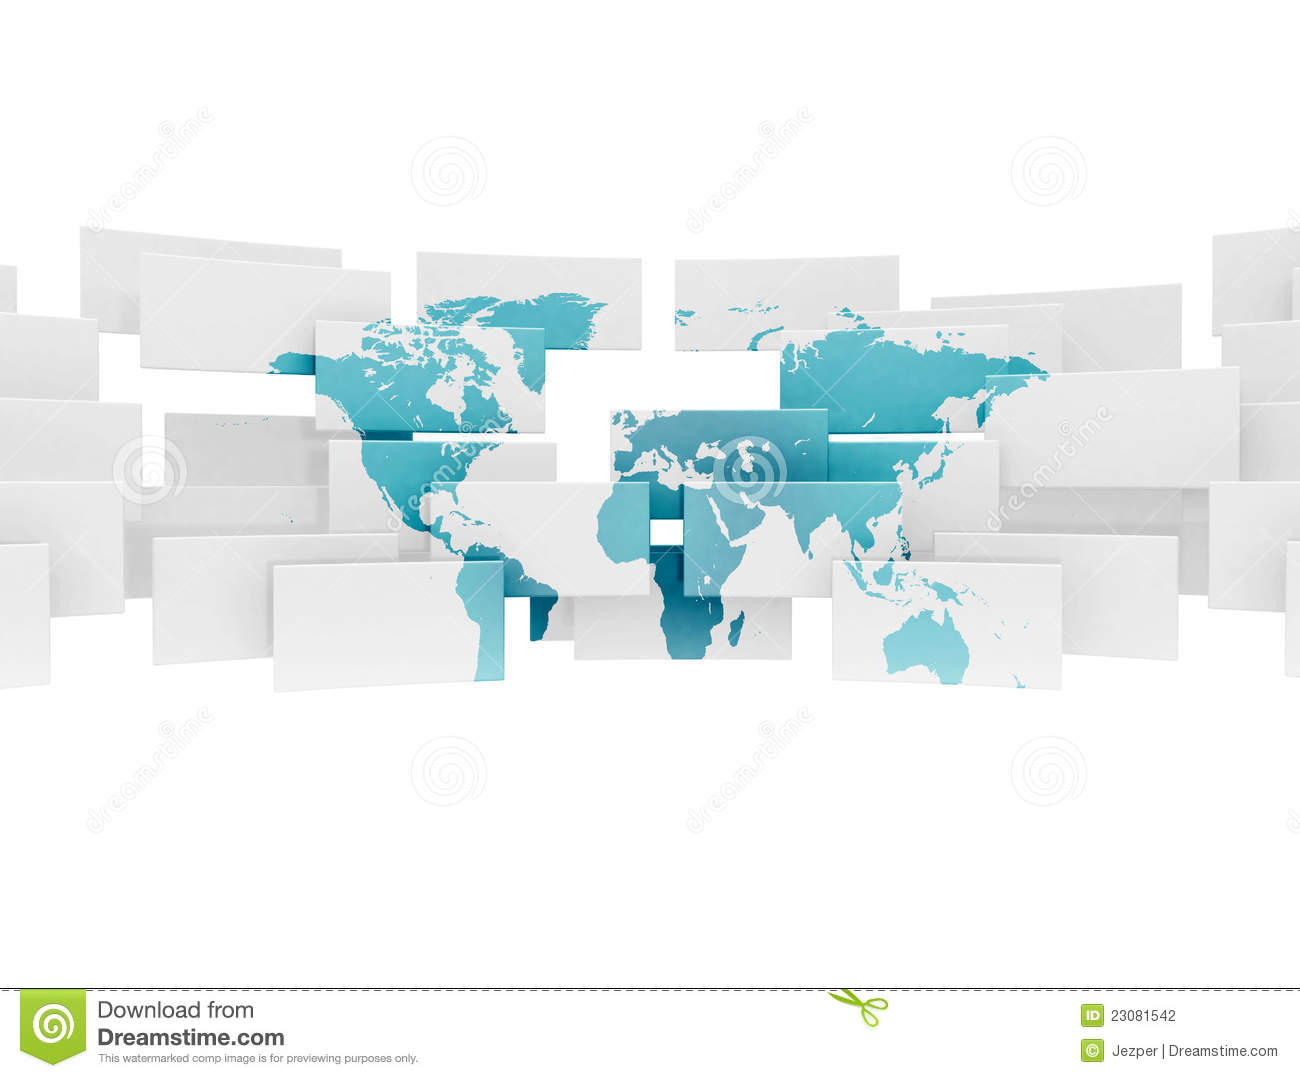 Abstract world map illustration stock illustration illustration of abstract world map illustration gumiabroncs Gallery